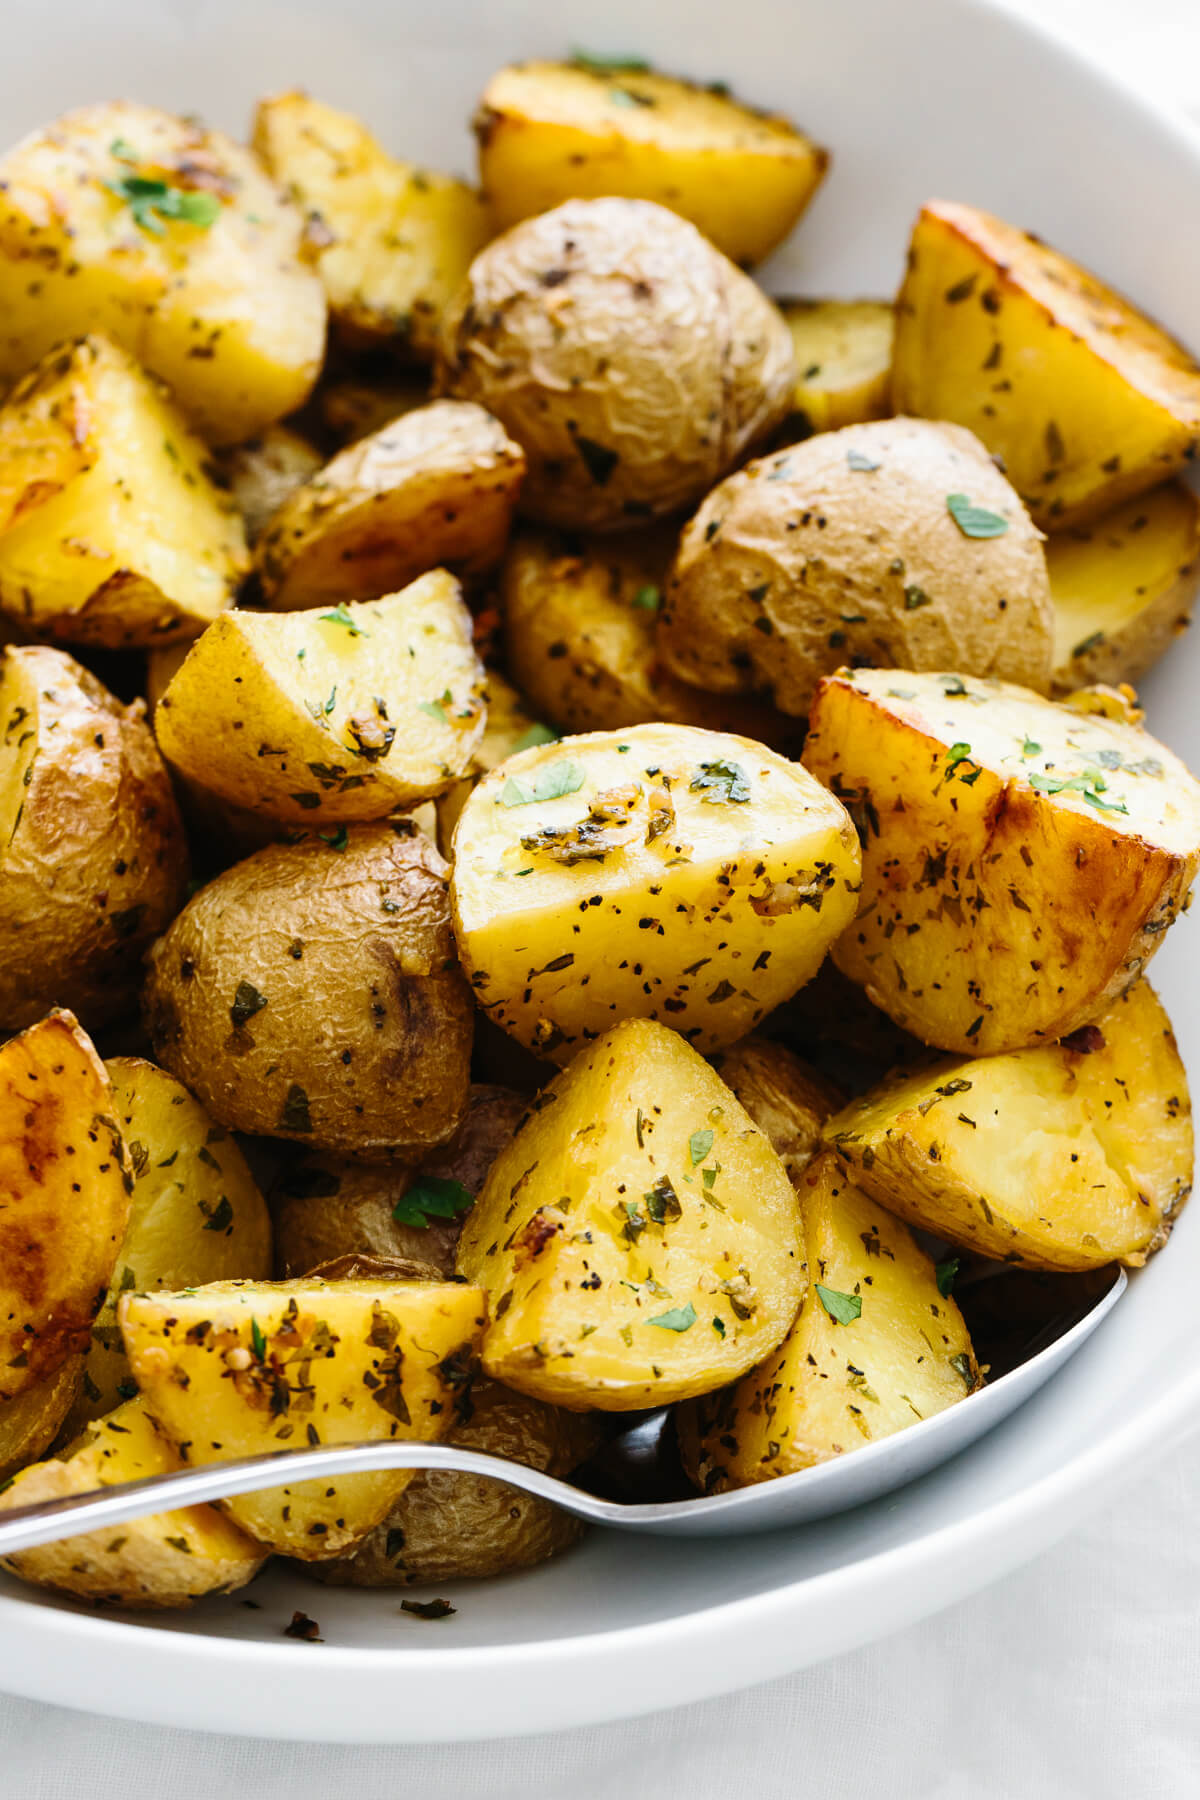 Garlic herb roasted potatoes in a bowl.